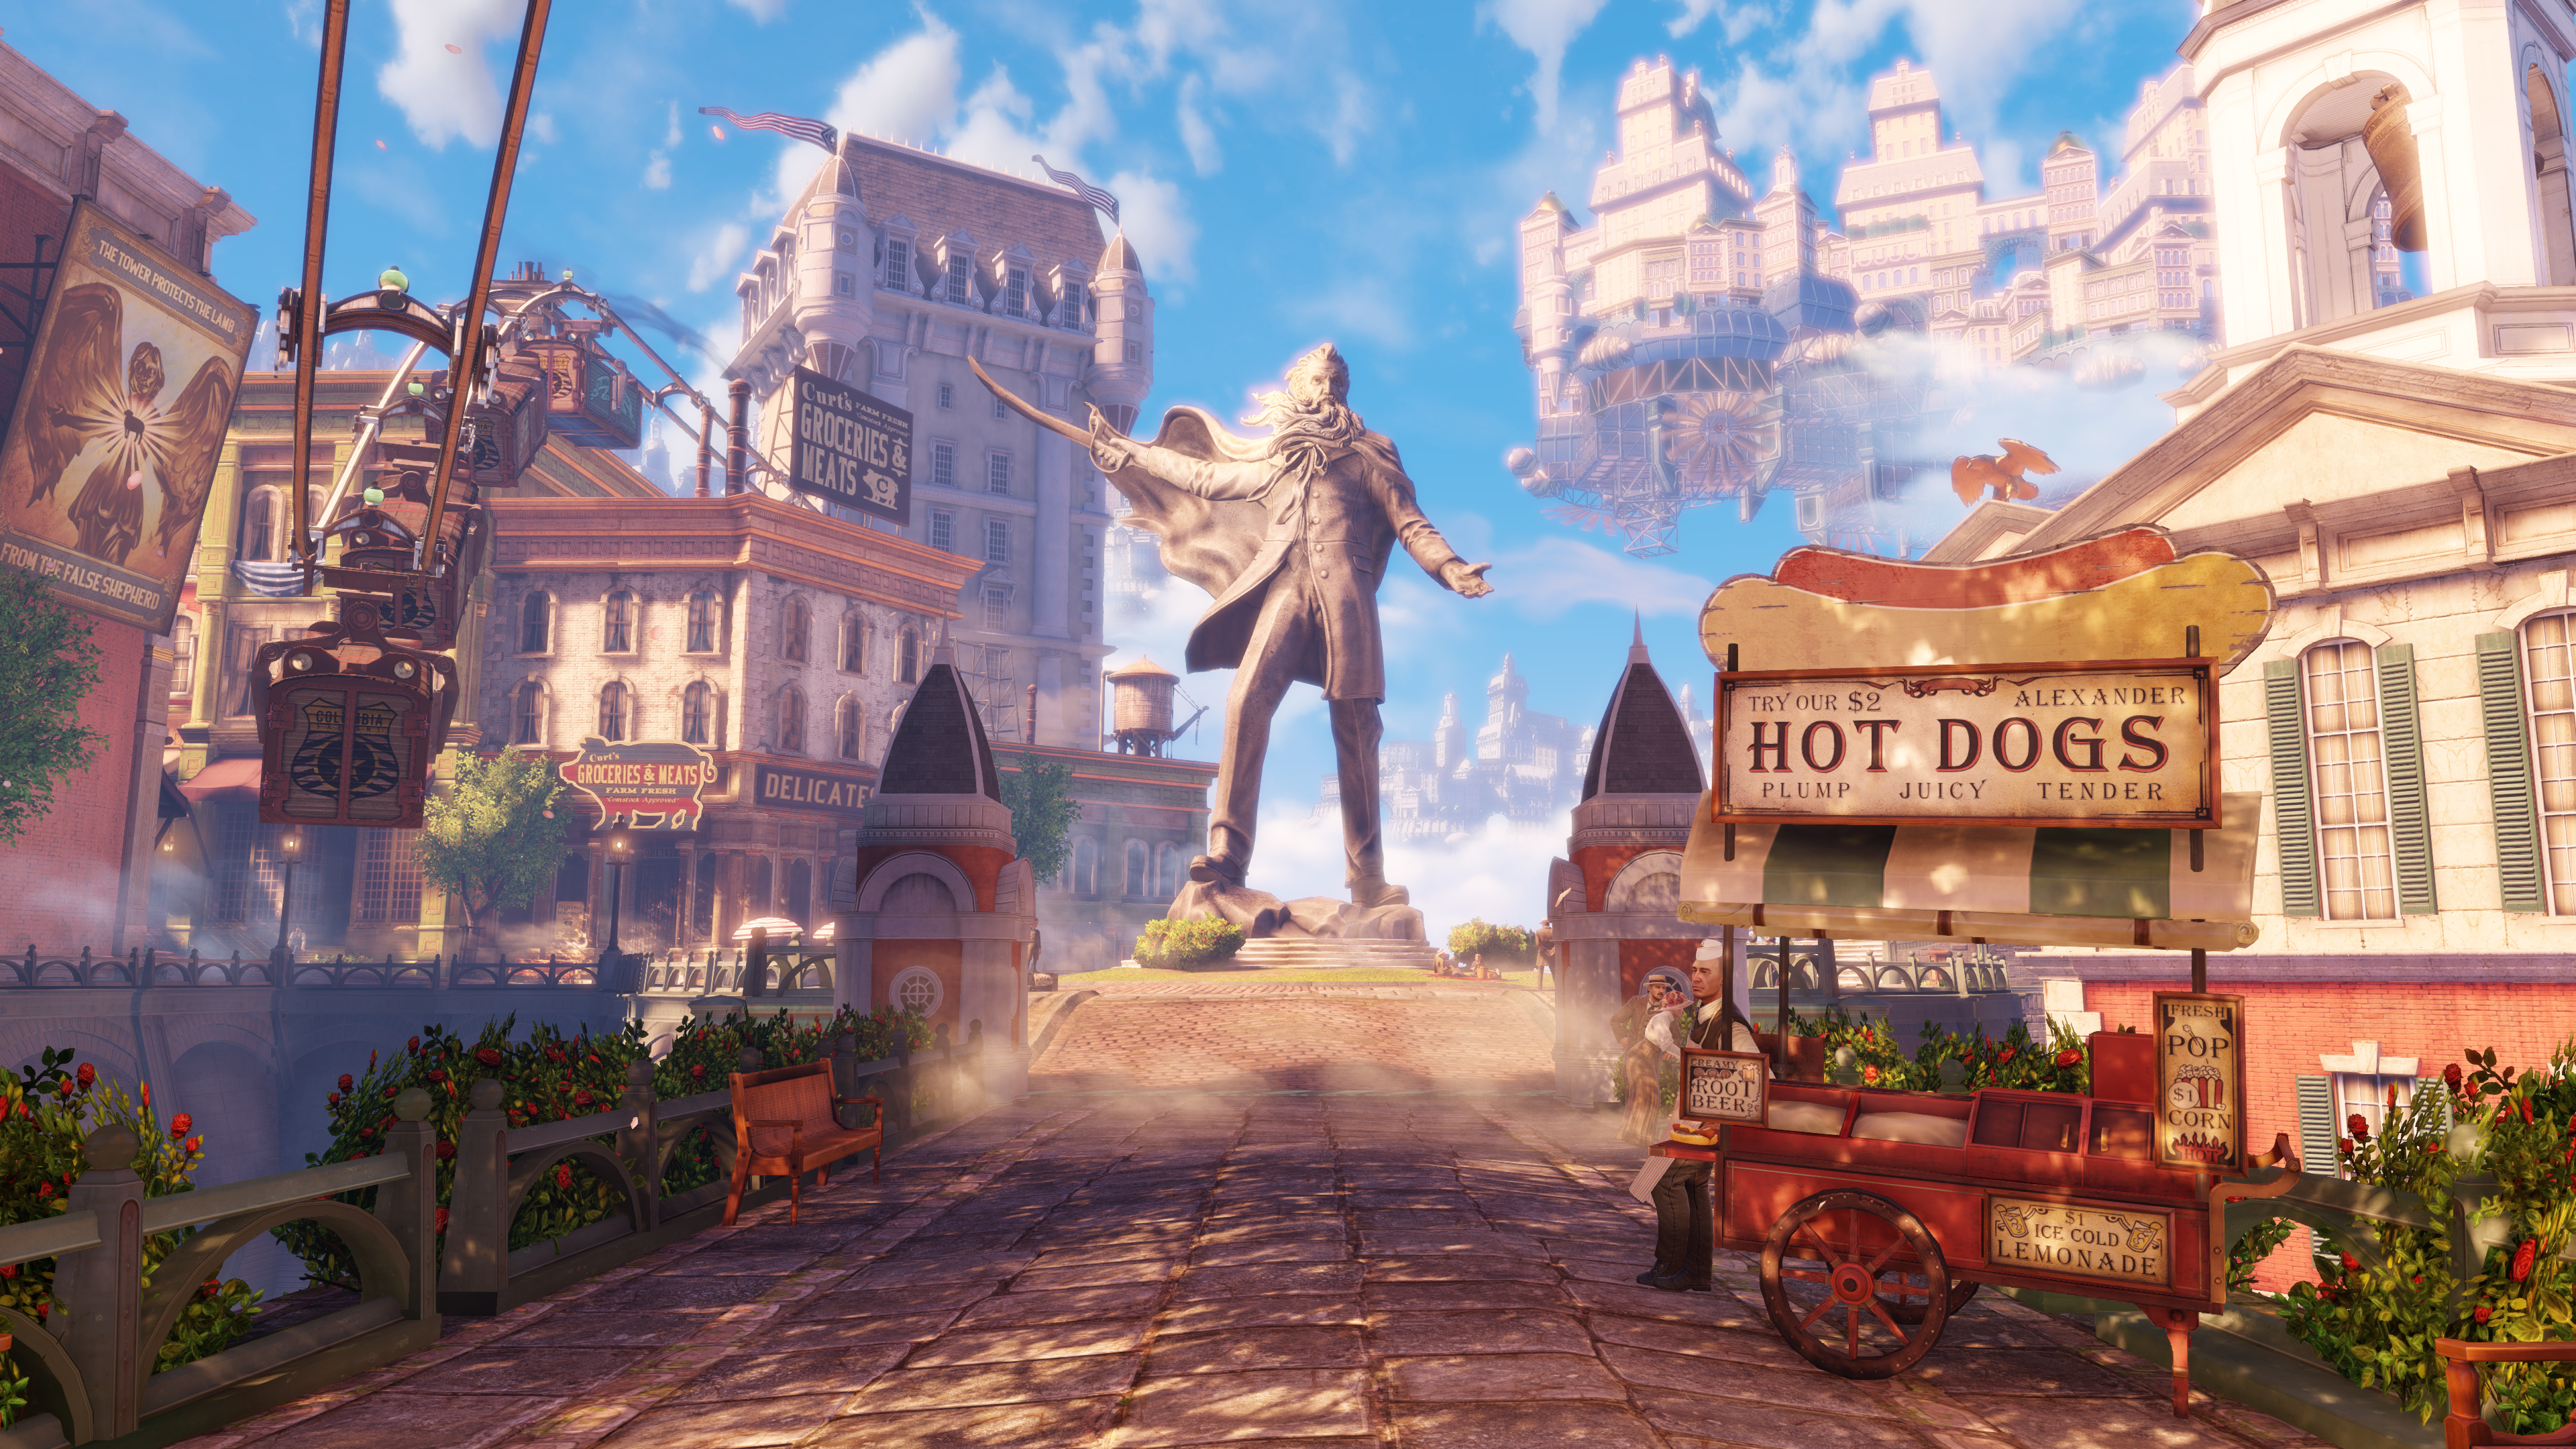 BioShock Infinite 4K PC Screenshots On The Nvidia GTX 770